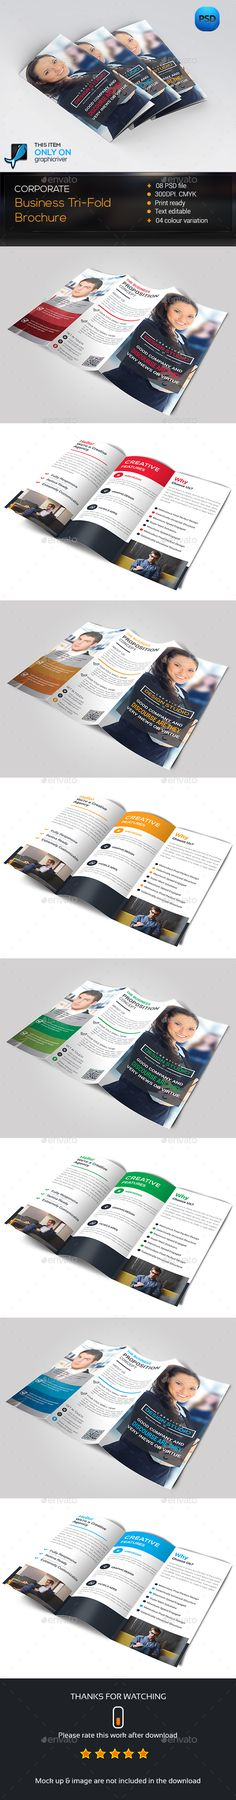 Trifold Brochure Template PSD #design Download: http://graphicriver.net/item/trifold-brochure/14237114?ref=ksioks